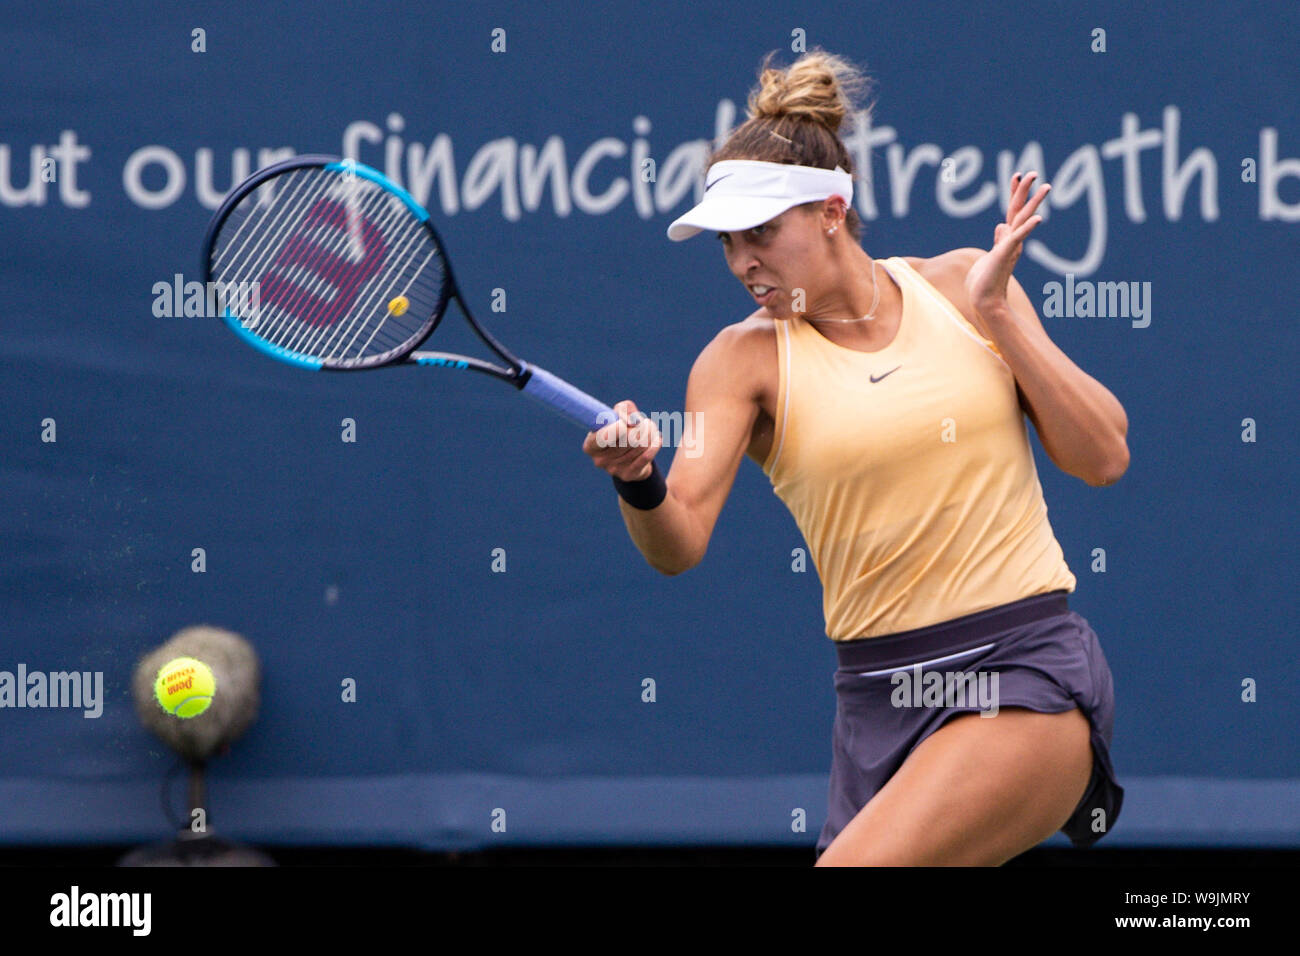 Mason, Ohio, USA. 13th Aug, 2019. Madison Keys (USA) in action during Tuesday's round of the Western and Southern Open at the Lindner Family Tennis Center, Mason, Oh. Credit: Scott Stuart/ZUMA Wire/Alamy Live News Stock Photo